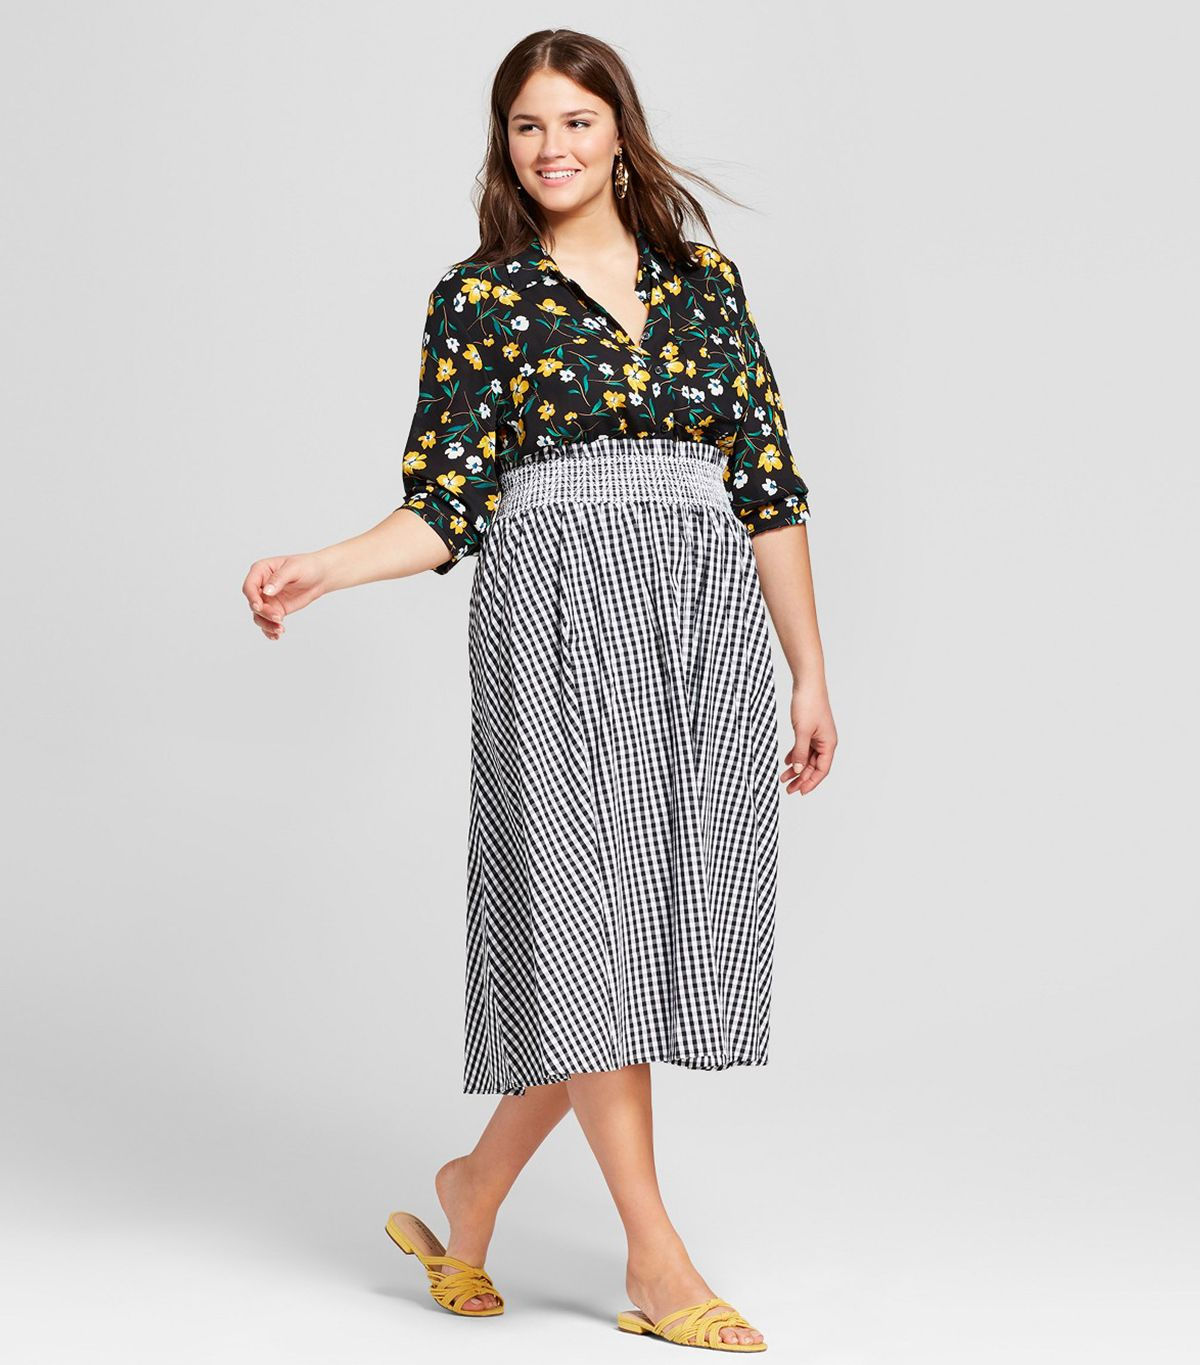 The Best Skirt Style for Your Body Type – Site Title